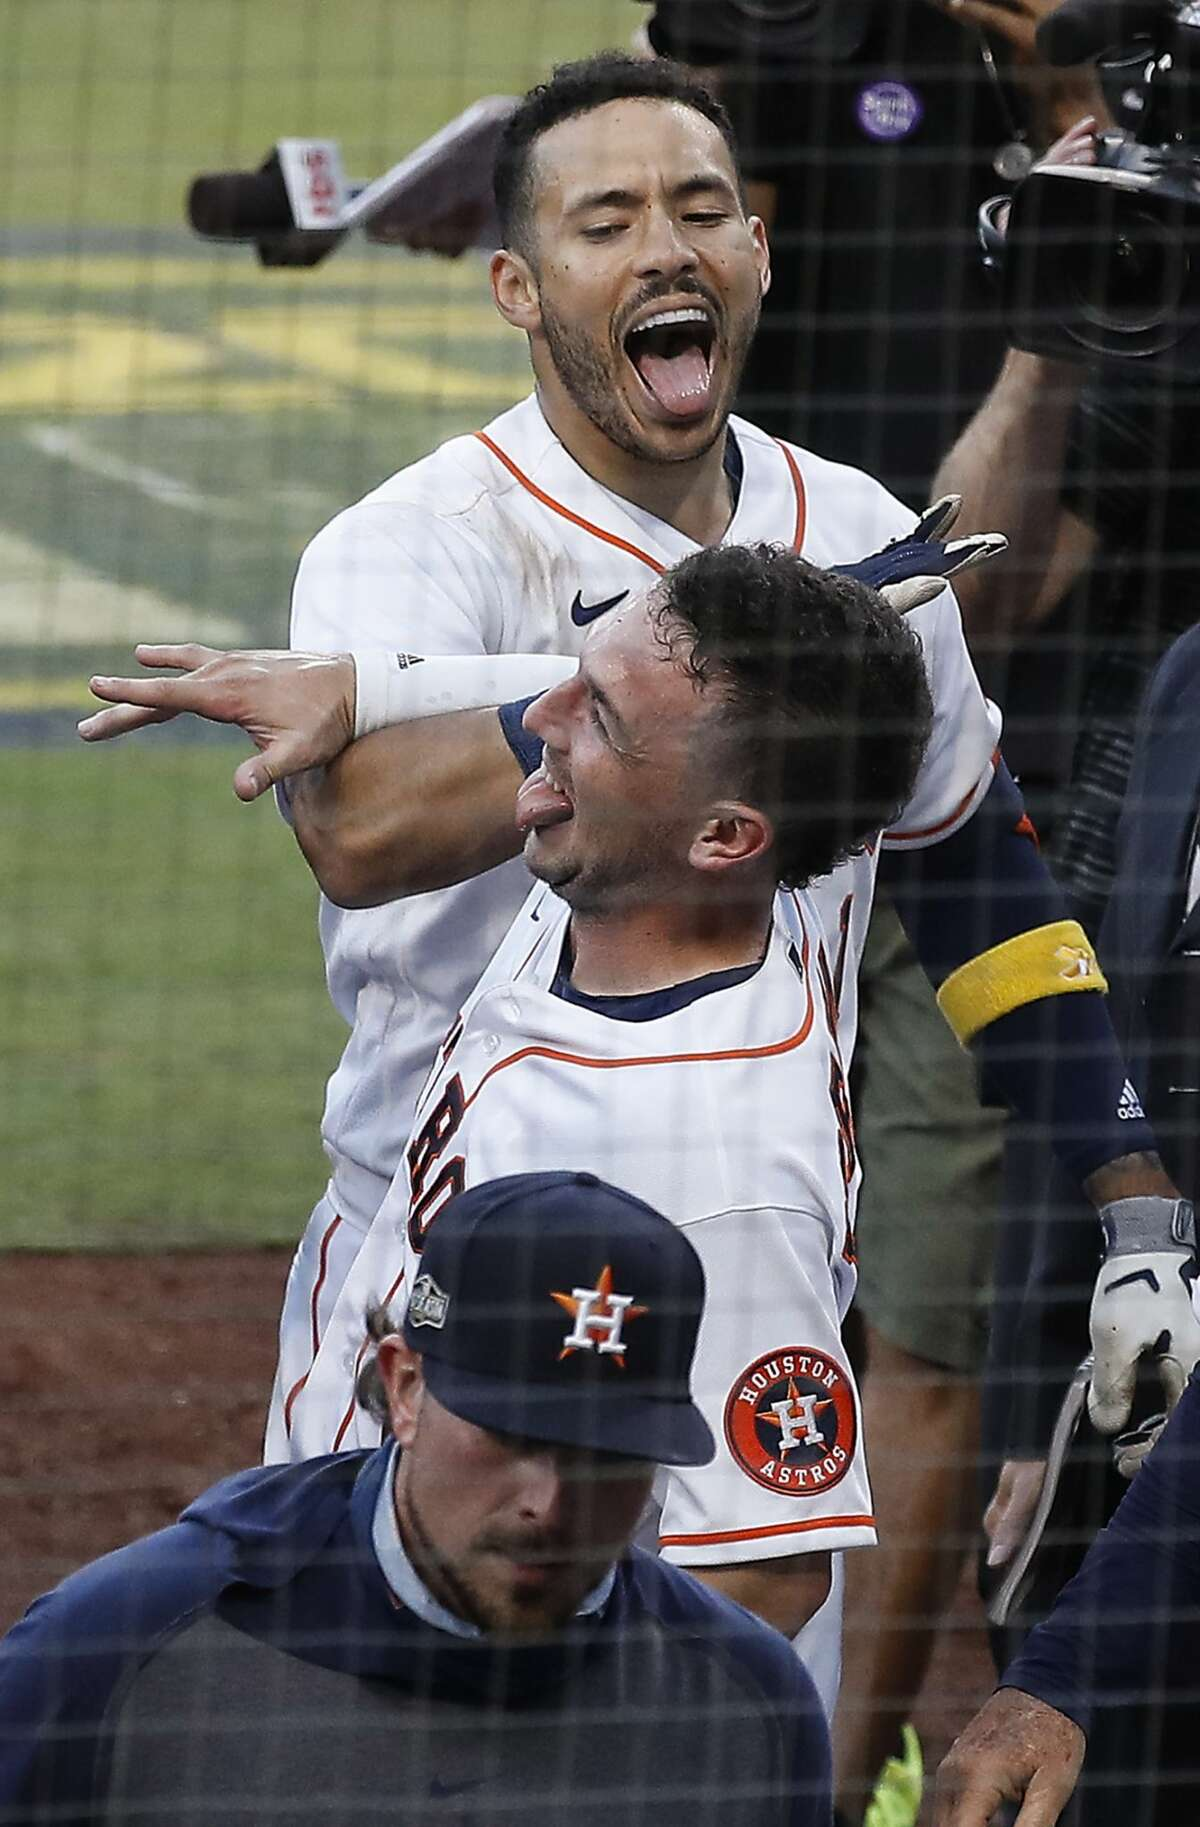 Houston Astros Carlos Correa (1) and Alex Bregman celebrate Correa's walk off home run off Tampa Bay Rays reliever Nick Anderson during the ninth inning of Game 5 of the American League Championship Series at Petco Park Thursday, Oct. 15, 2020, in San Diego. The Astros won 4-3, closing the gap in the best-of-seven series to 3 games to 2.